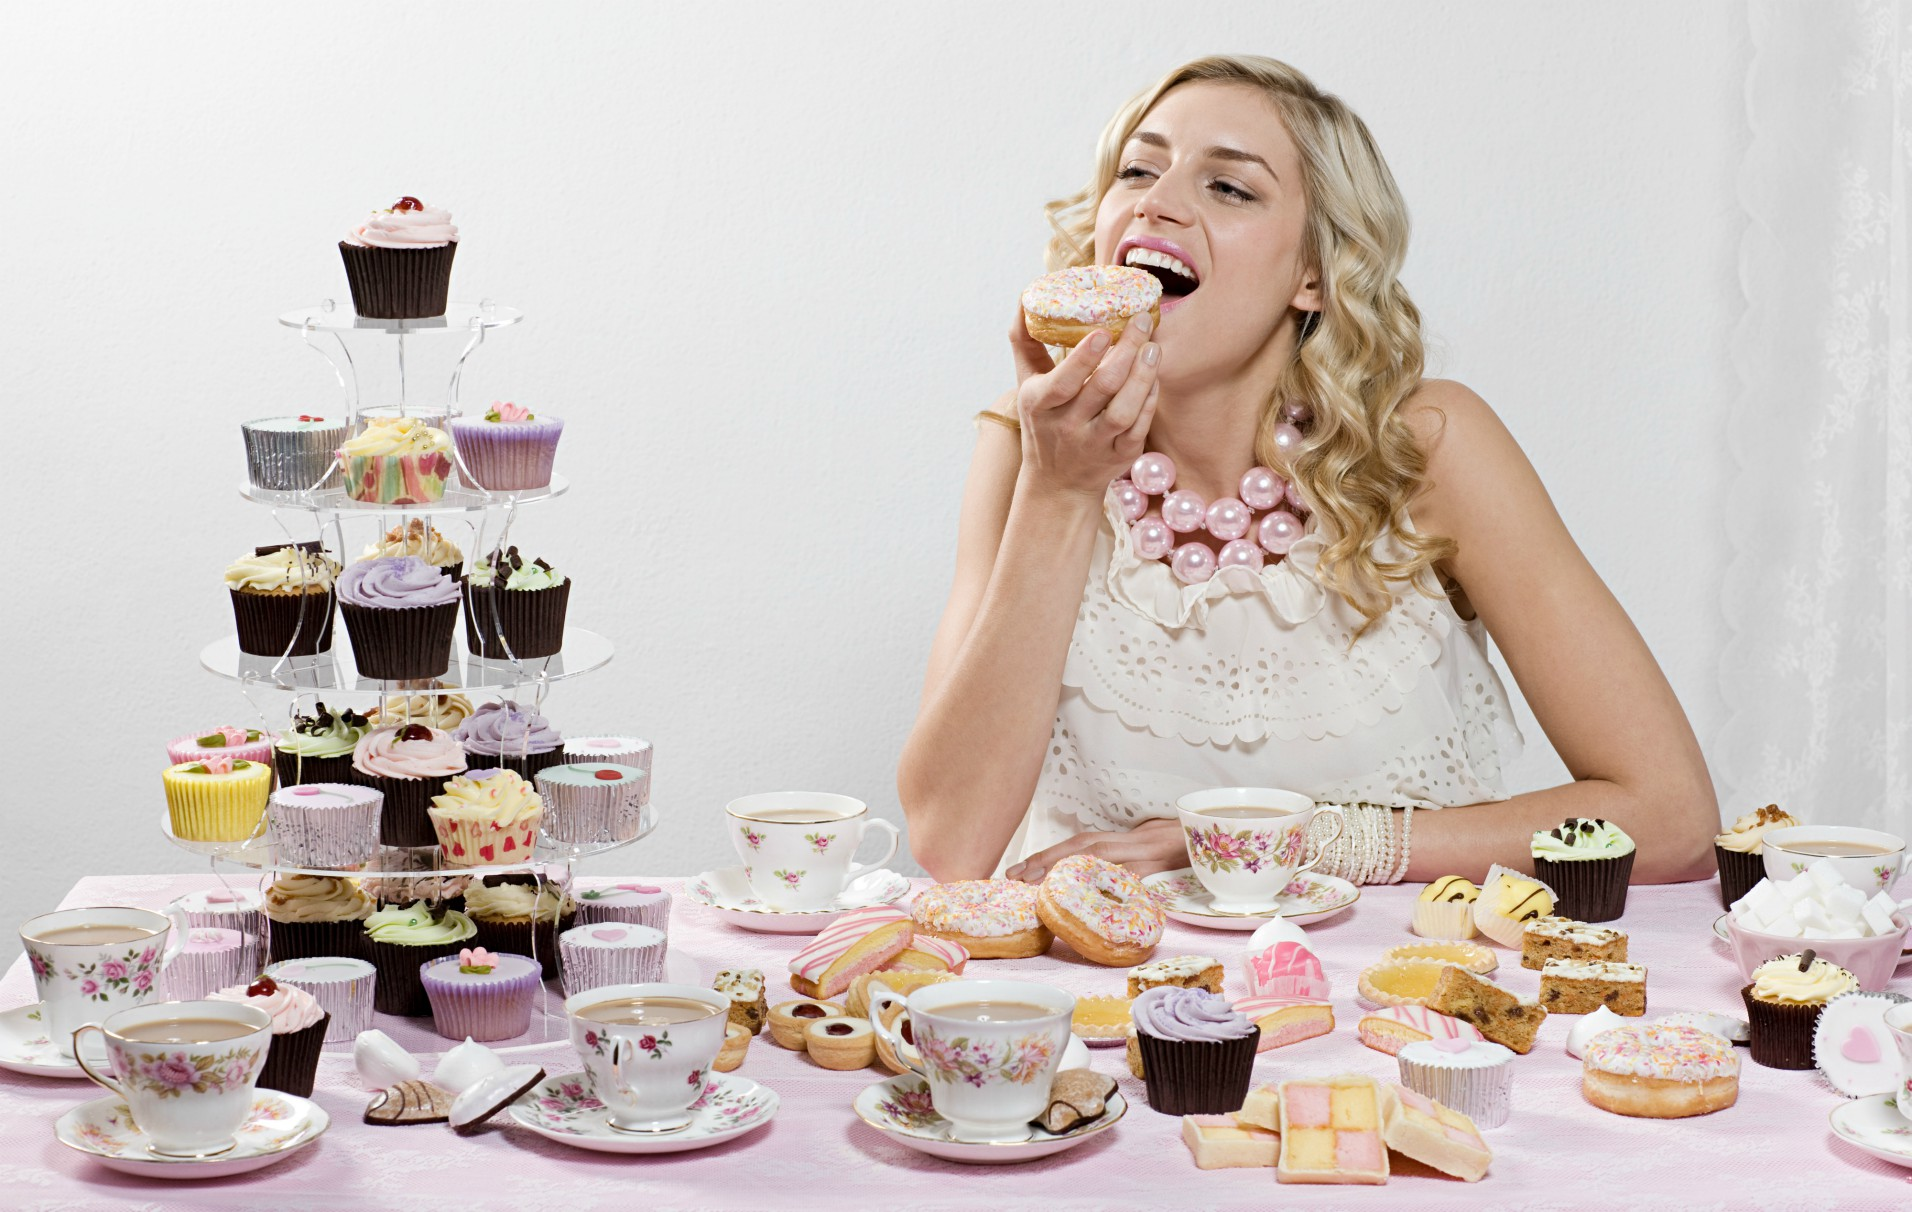 30 afternoon tea ideas | GoodtoKnow